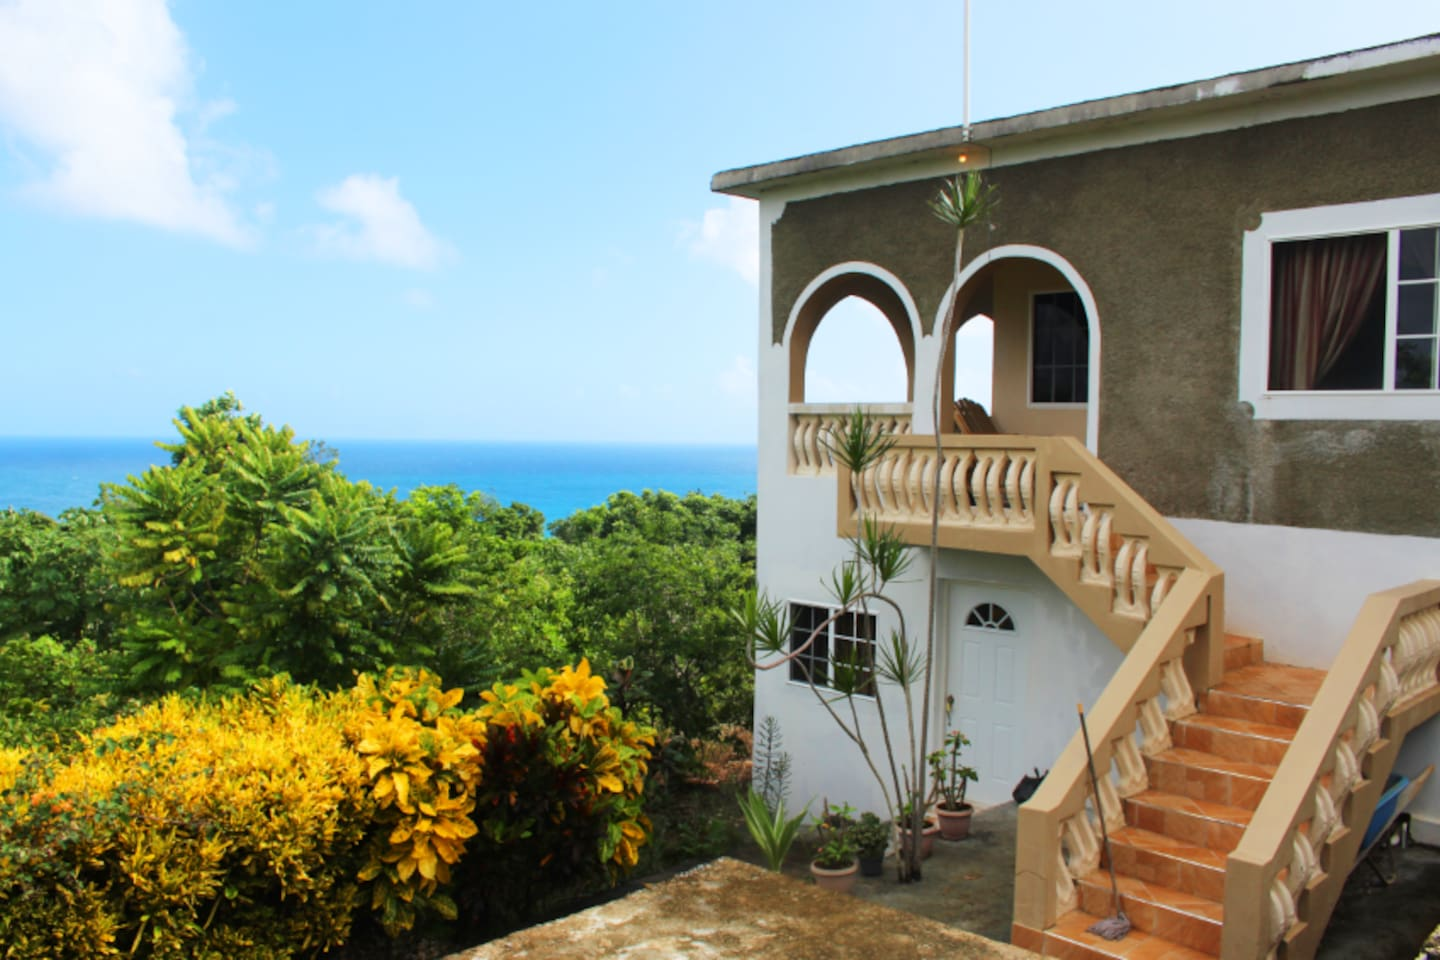 Marline Sunshine has a private entrance and opens right up to the veranda.